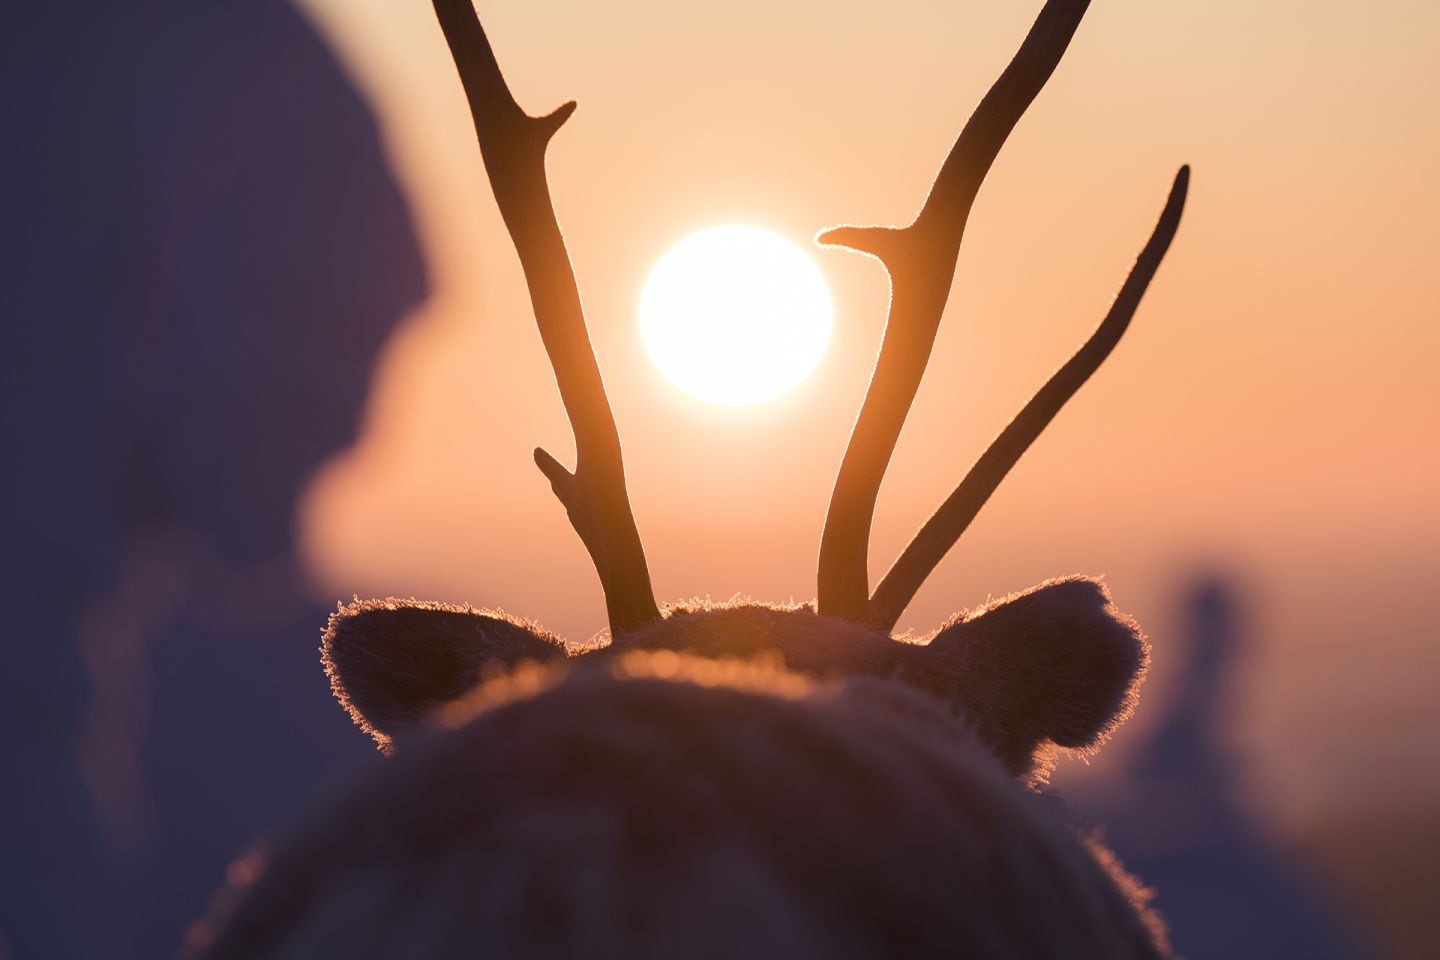 The sun between a reindeer's antlers, during production of A Reindeer's Journey in Lapland